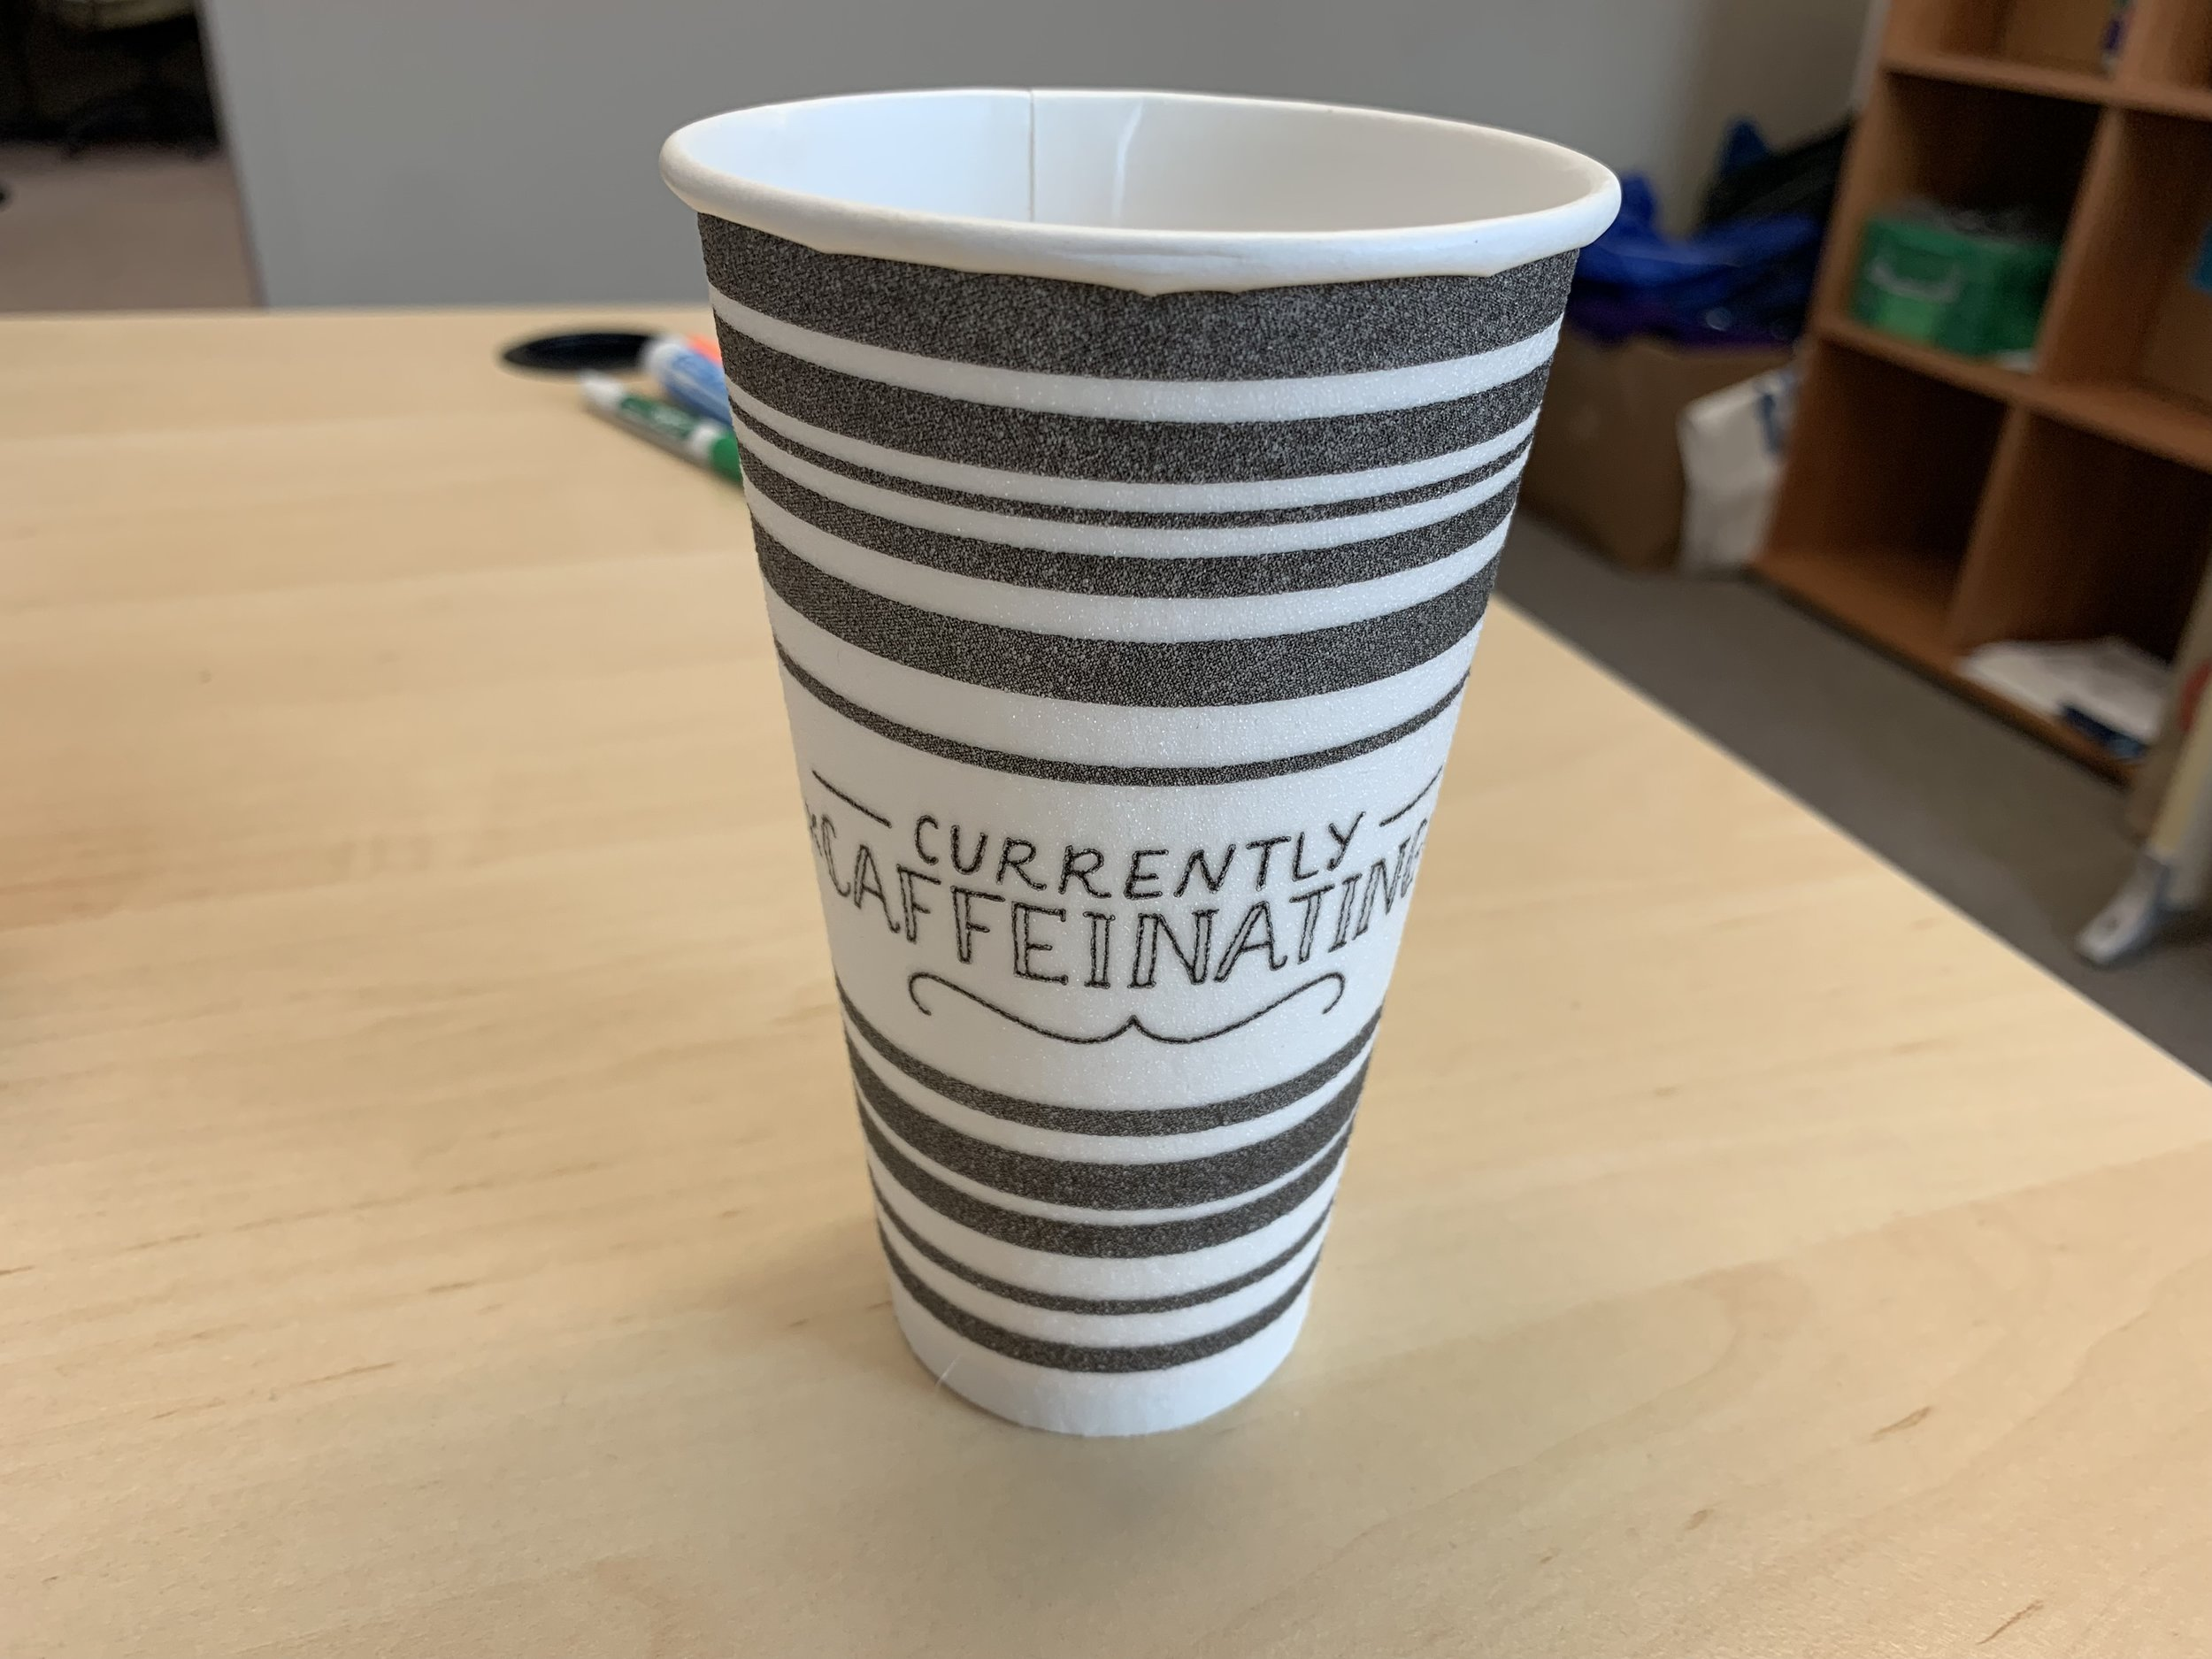 The styrofoam cups that I use while I'm in the office keeps everything warm or cold. They just don't ever breakdown in the landfills. I was using one of these cups per day at work. On mornings when I can plan ahead, I bring my cups from home. I need to plan more!